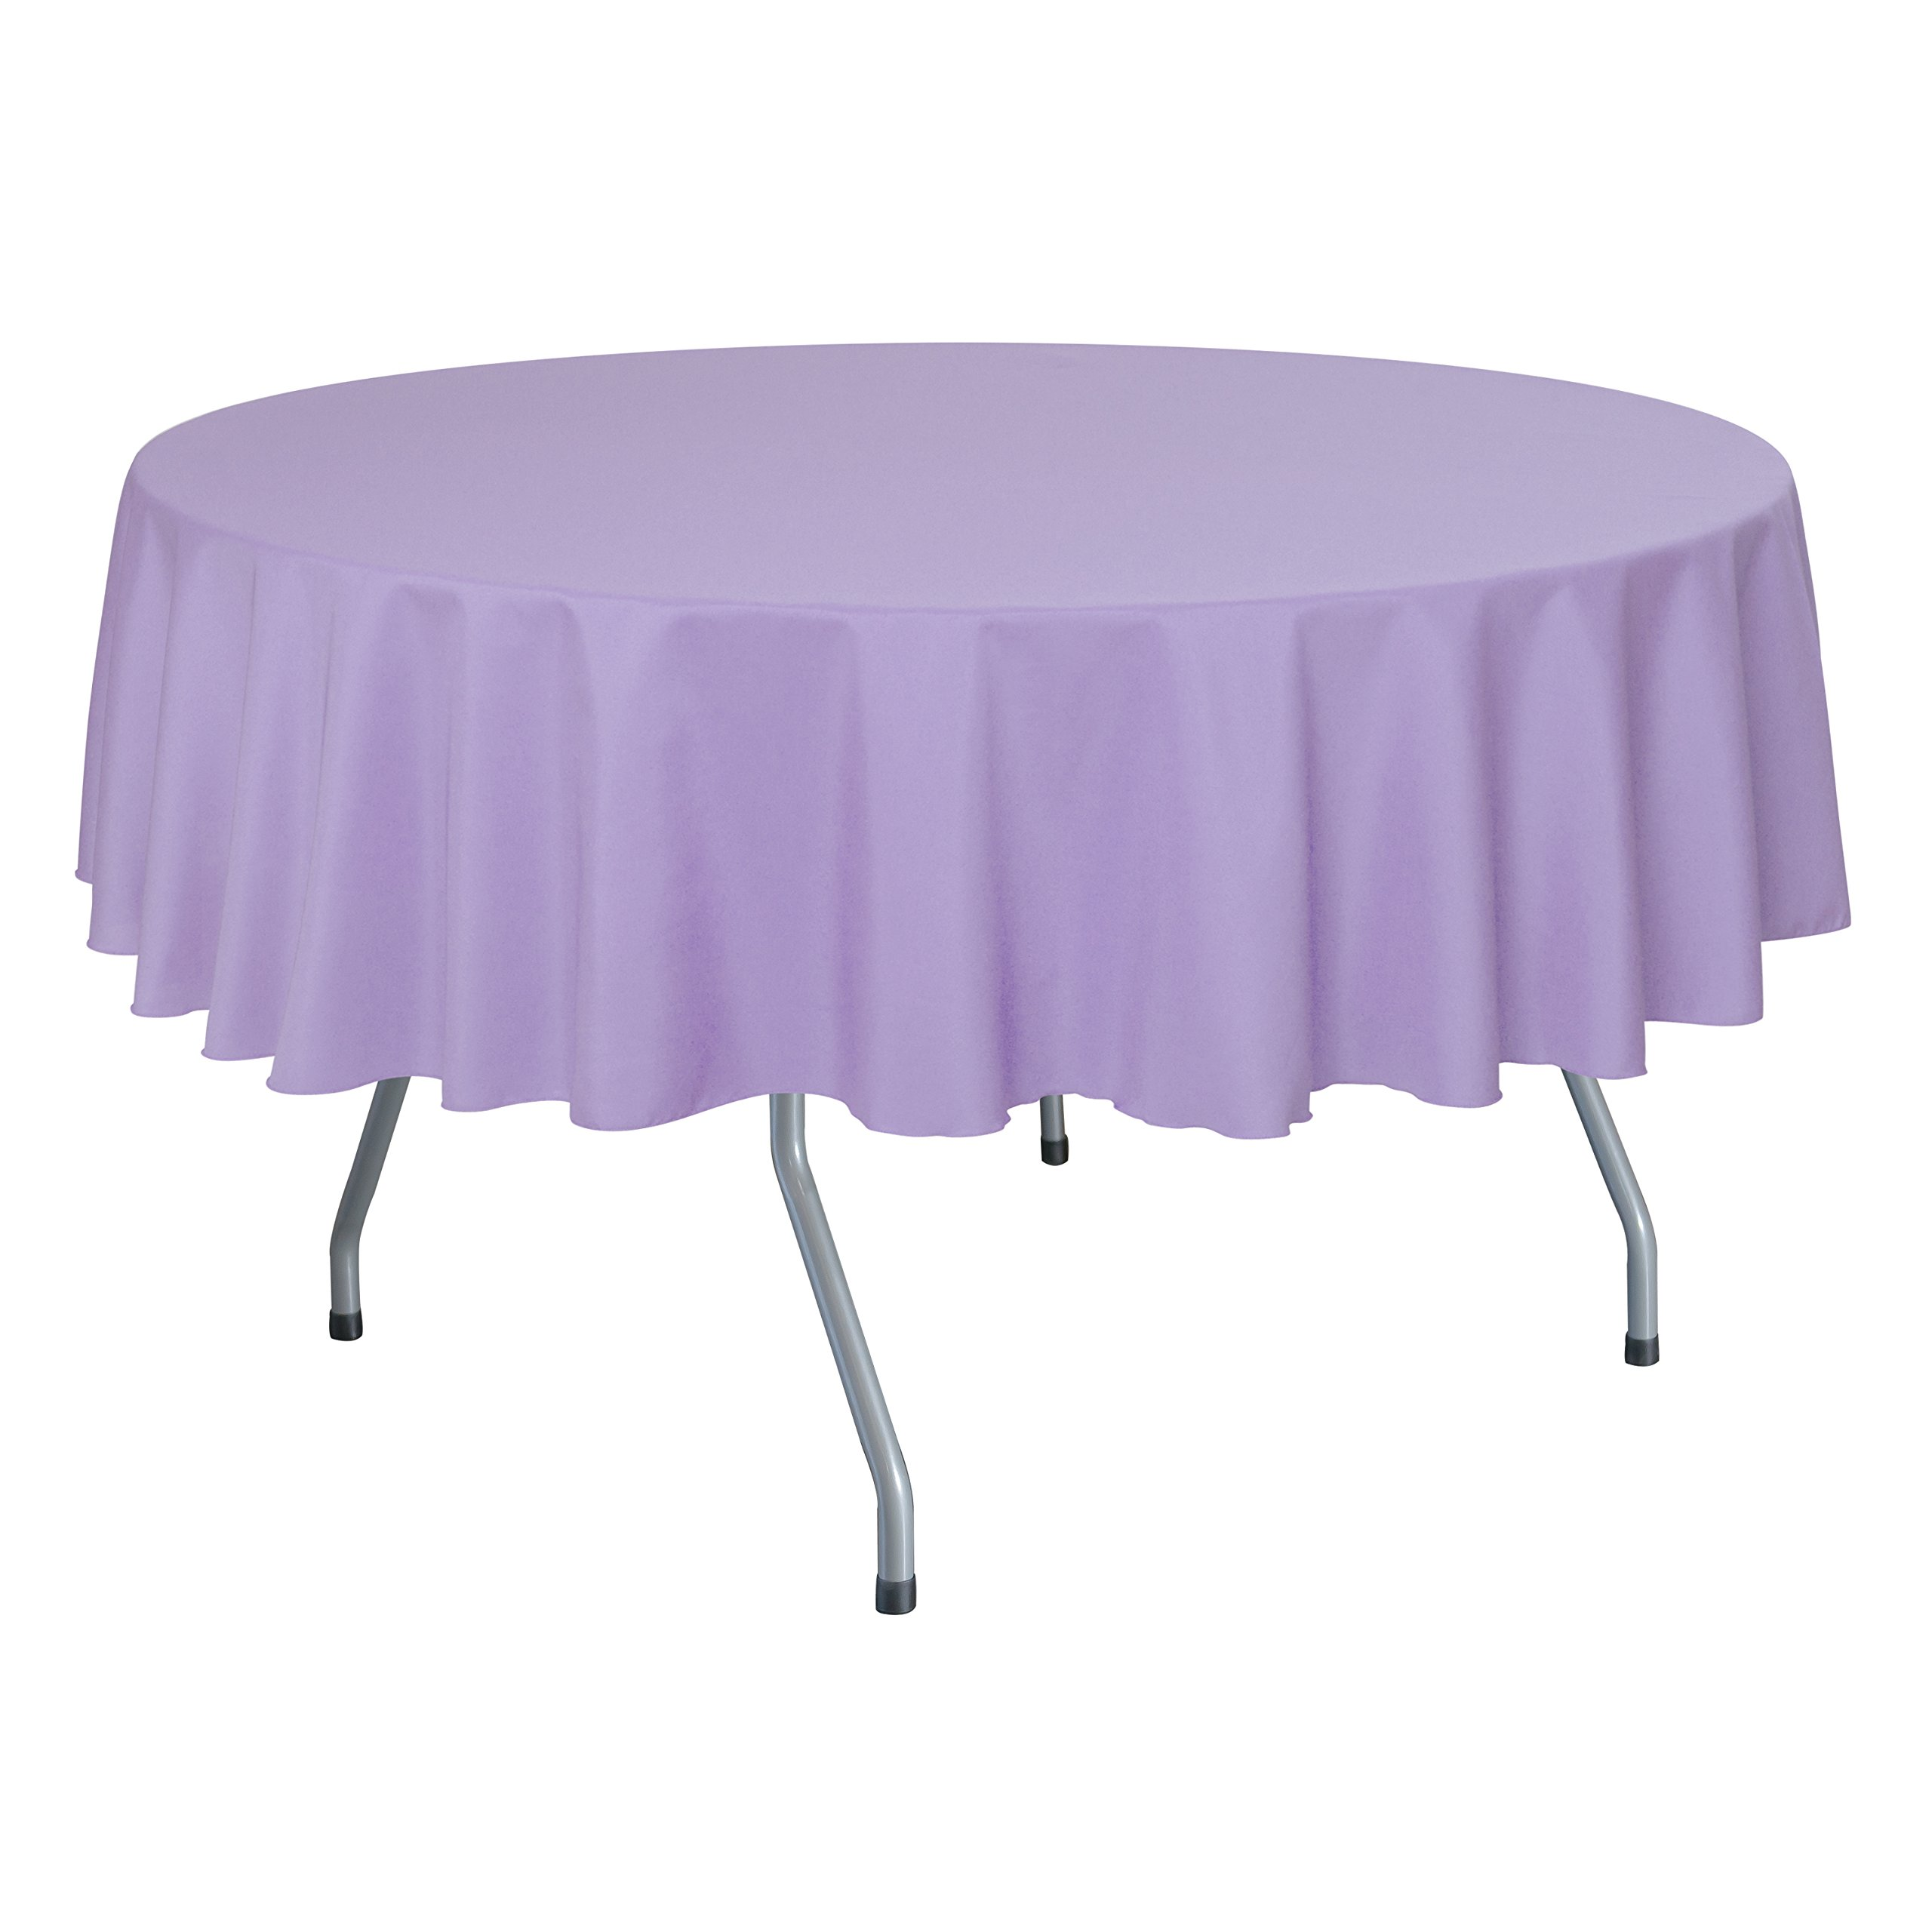 Ultimate Textile (10 Pack) 84-Inch Round Polyester Linen Tablecloth - for Wedding, Restaurant or Banquet use, Lilac Light Purple